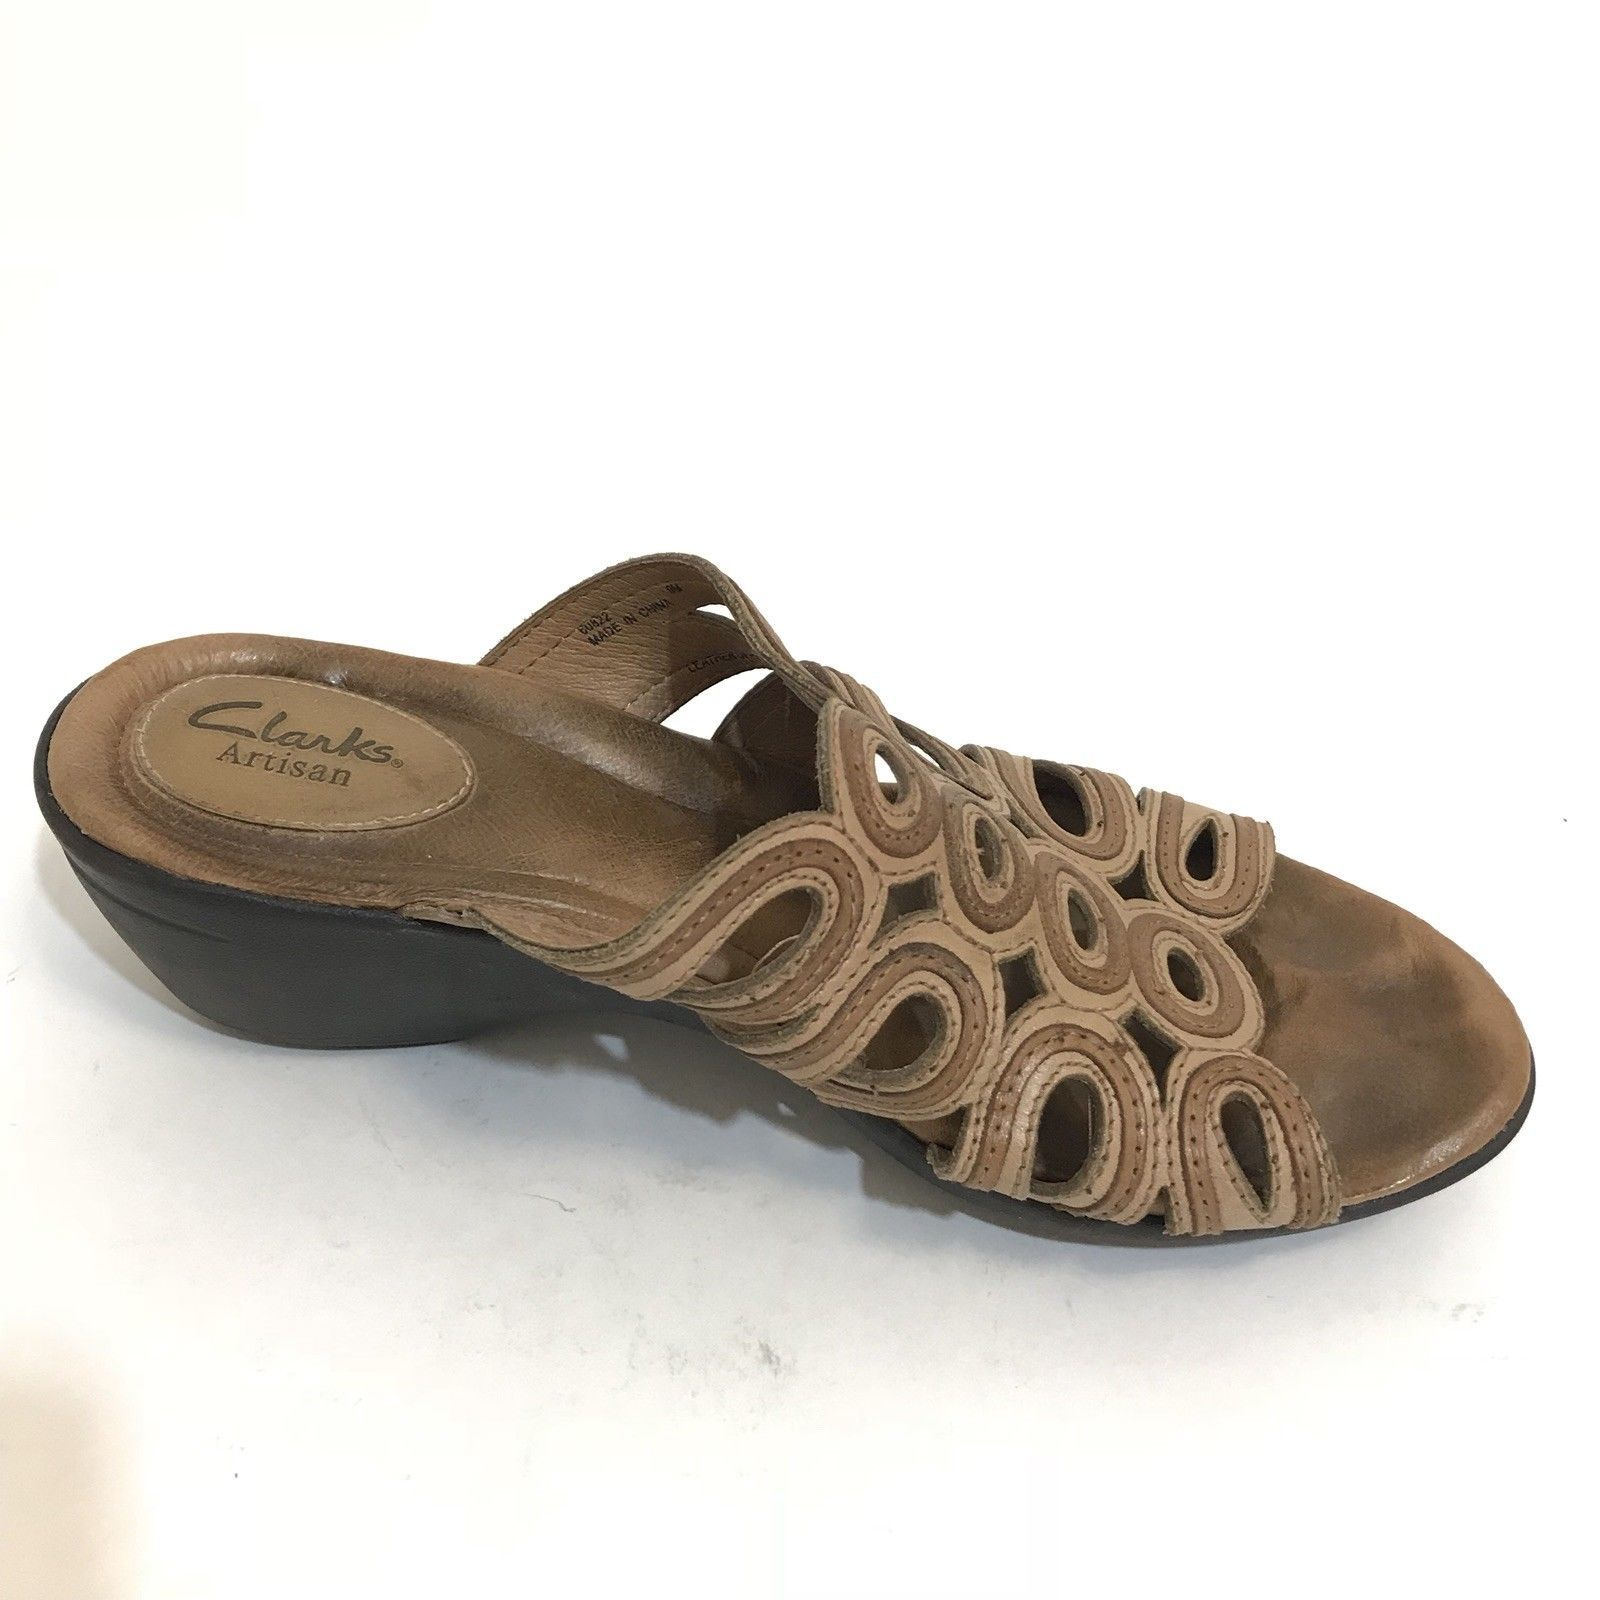 8becfb11064d Clarks Womens Comfort Shoes Size 9M Artisan and 50 similar items. S l1600